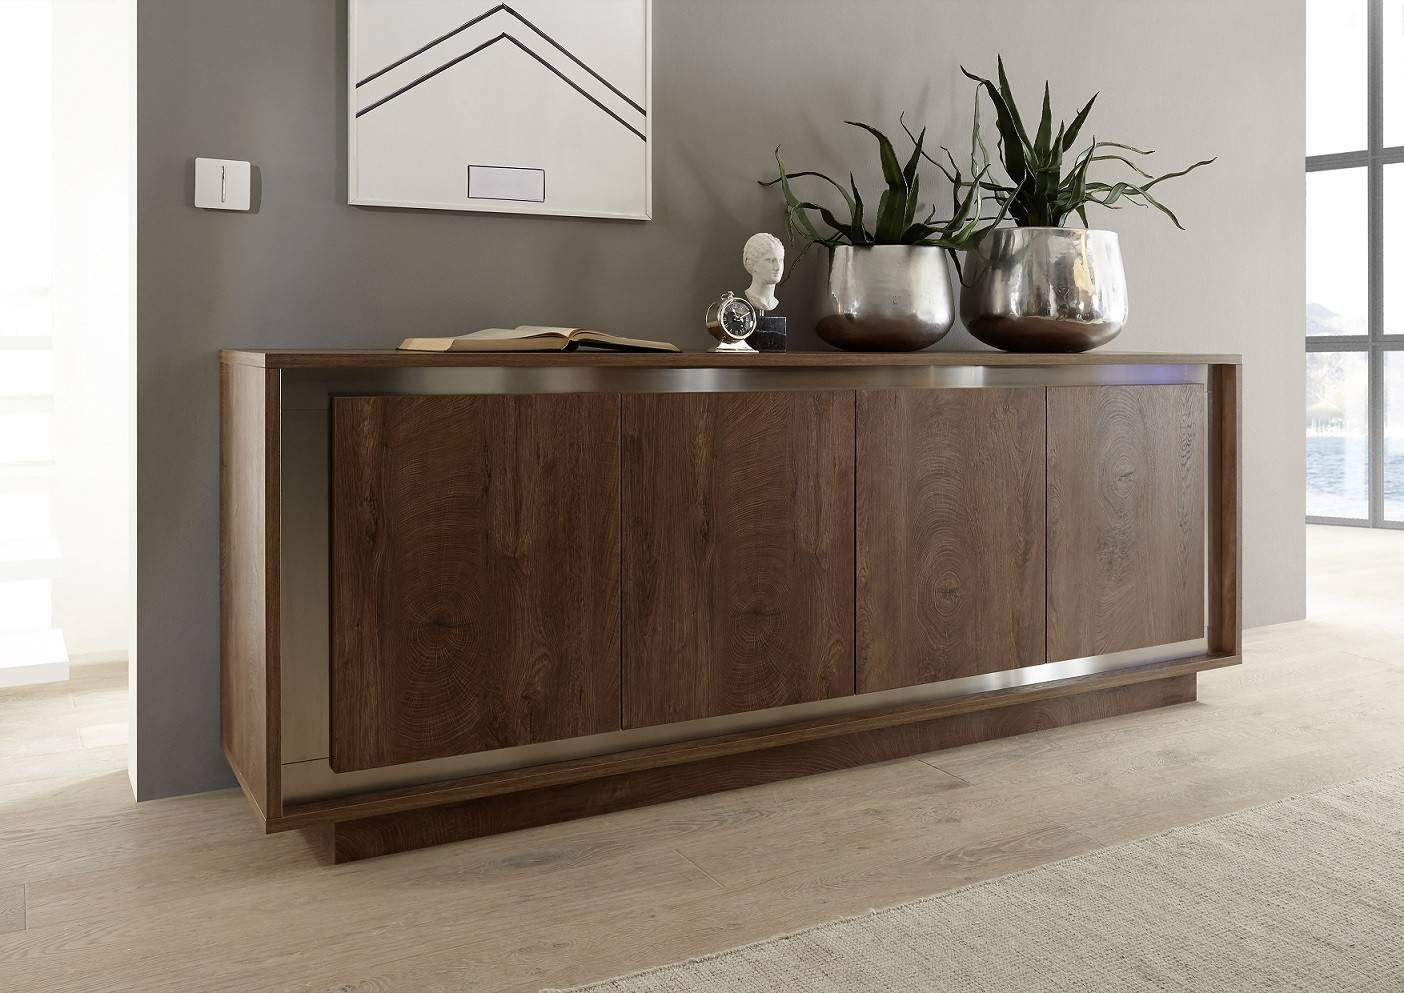 Modern Sideboards Uk - Sena Home Furniture with Hallway Sideboards (Image 2 of 15)